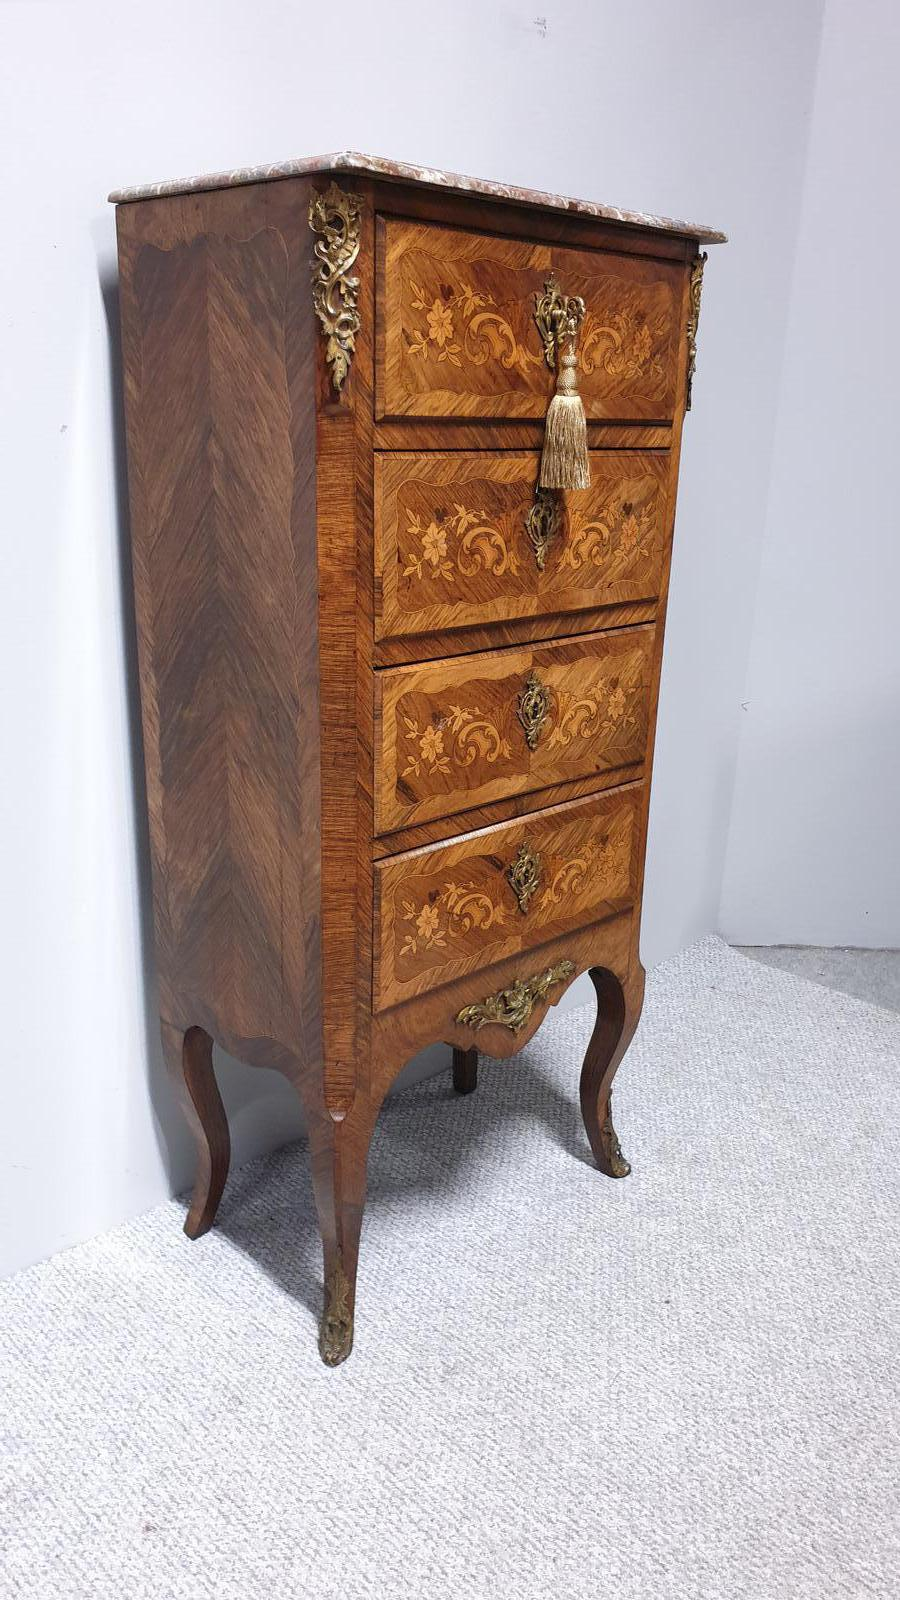 Superb French Semanier Chest of Drawers (1 of 1)